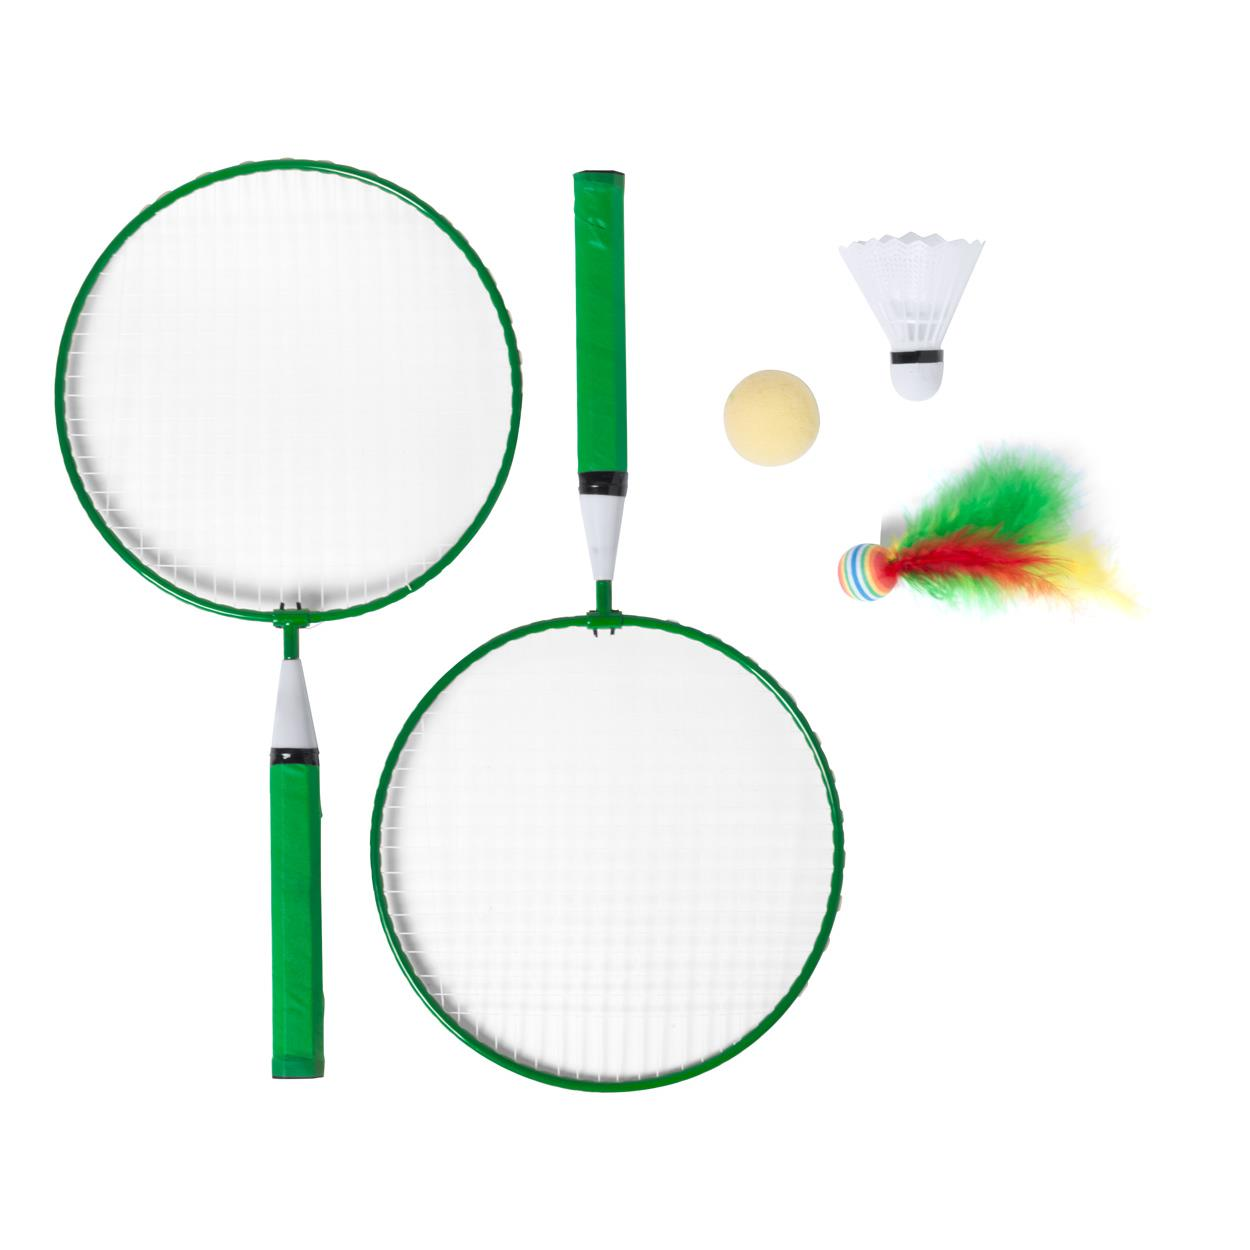 Dylam Badmintonset